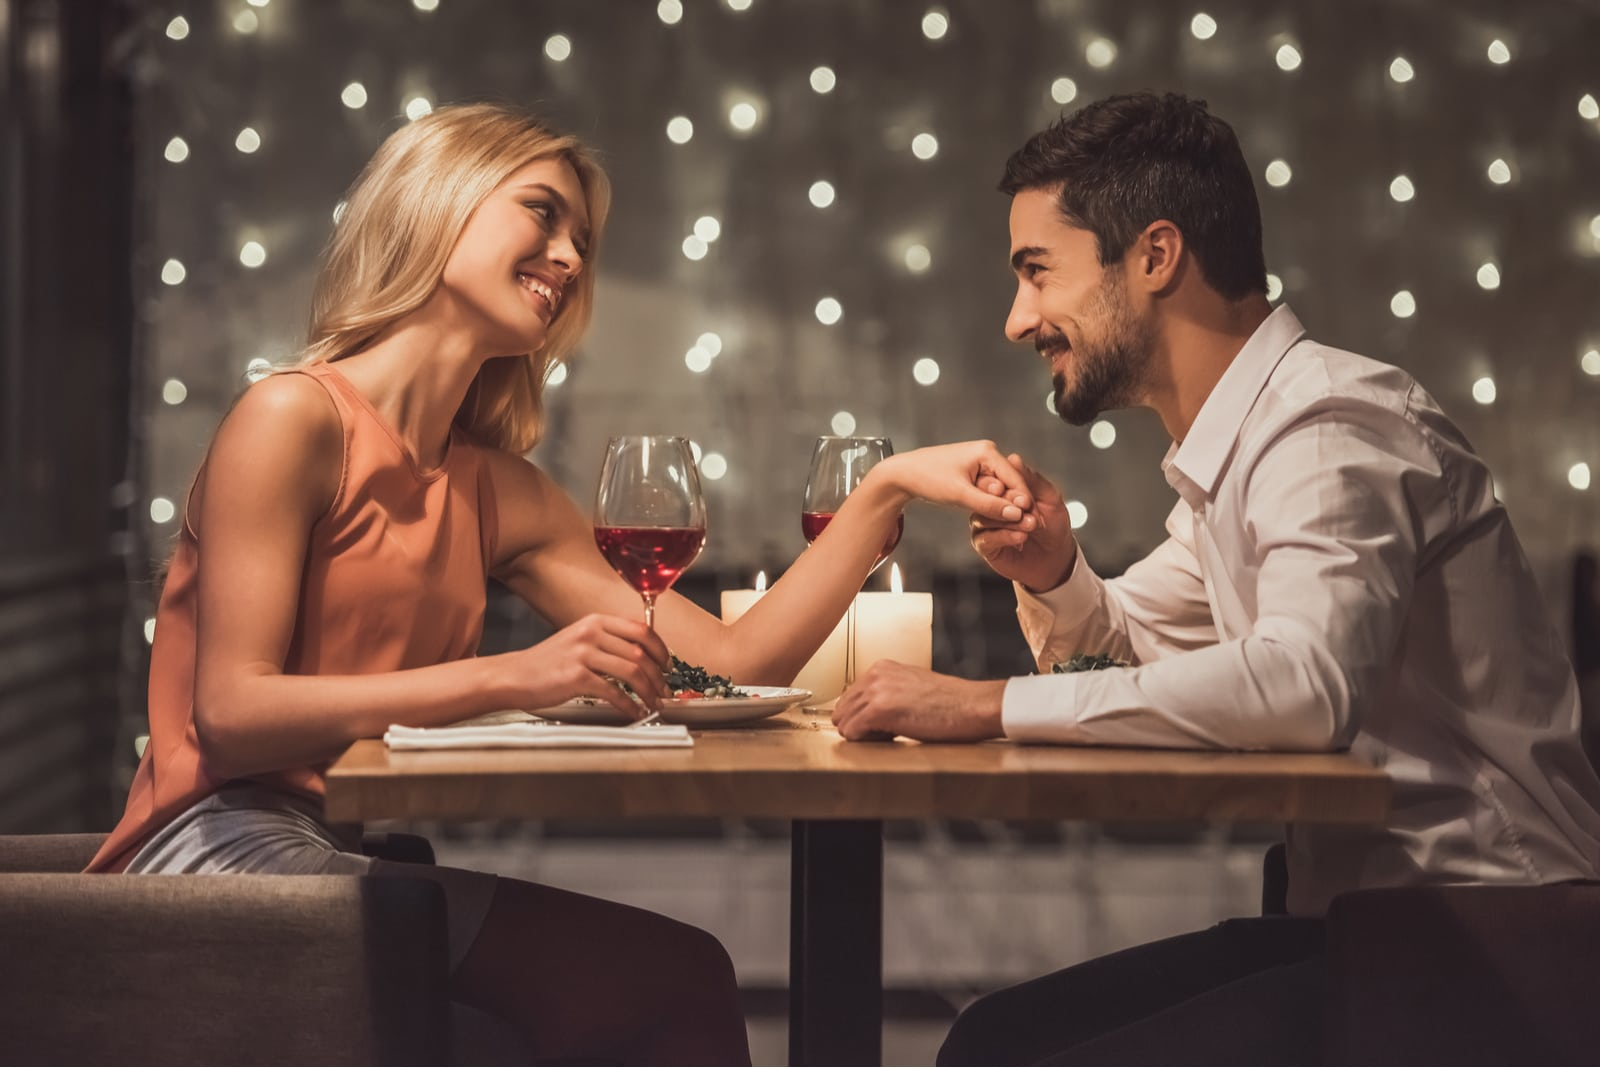 man complimenting woman in the restaurant